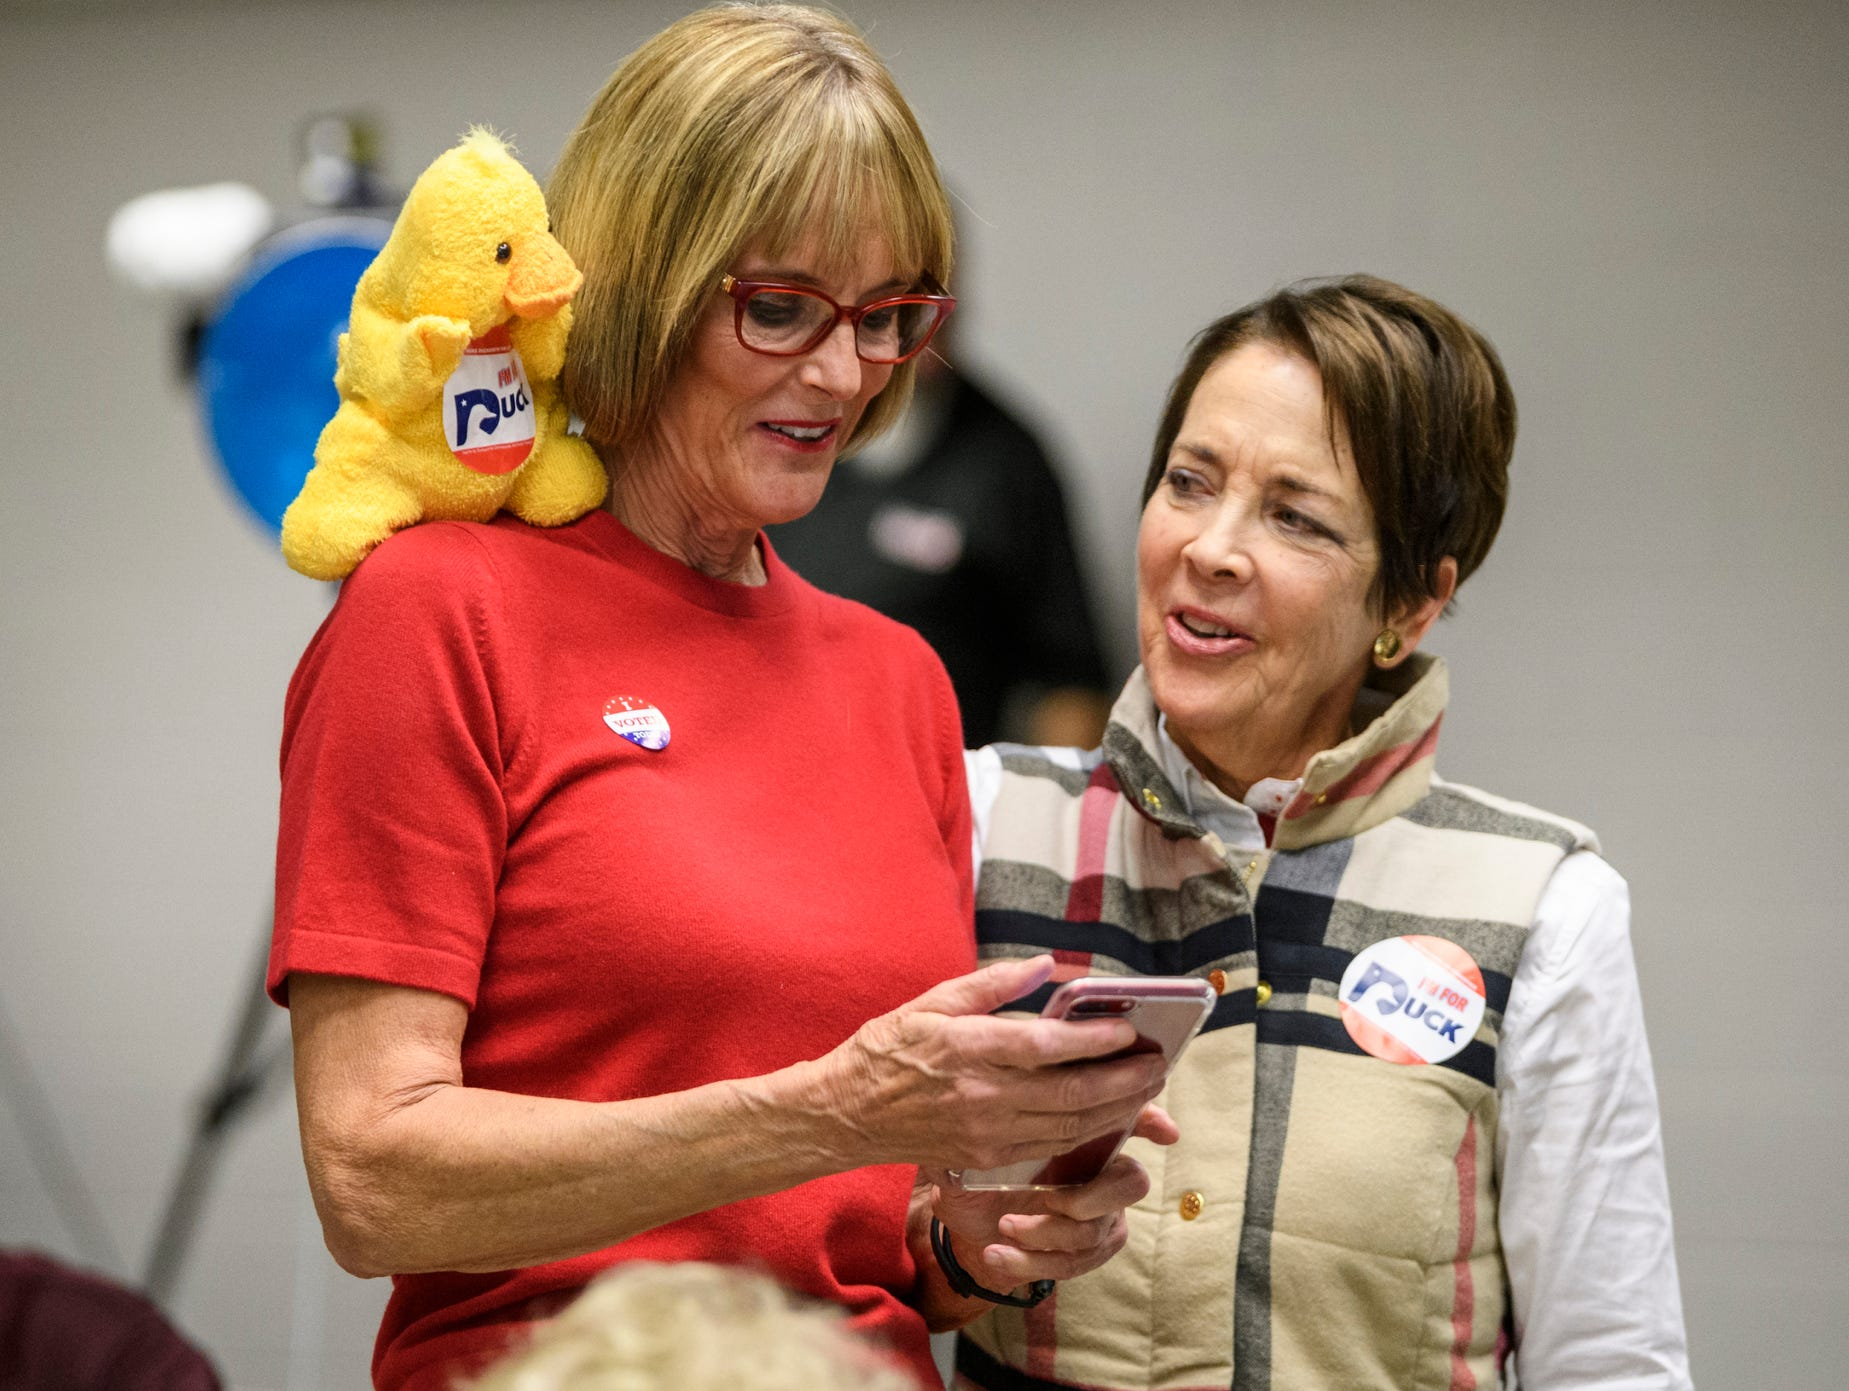 Lt. Governor Suzanne Crouch, left, prepares to take a photograph with Carolyn McClintock, right, and a duck puppet decorated with a Mike Duckworth campaign sticker during an election party held at C K Newsome Community Center in Evansville, Ind., Tuesday, Nov. 6, 2018. Duckworth lost the Vanderburgh County Commissioners seat to Democrat Jeff Hatfield by only 219 votes.